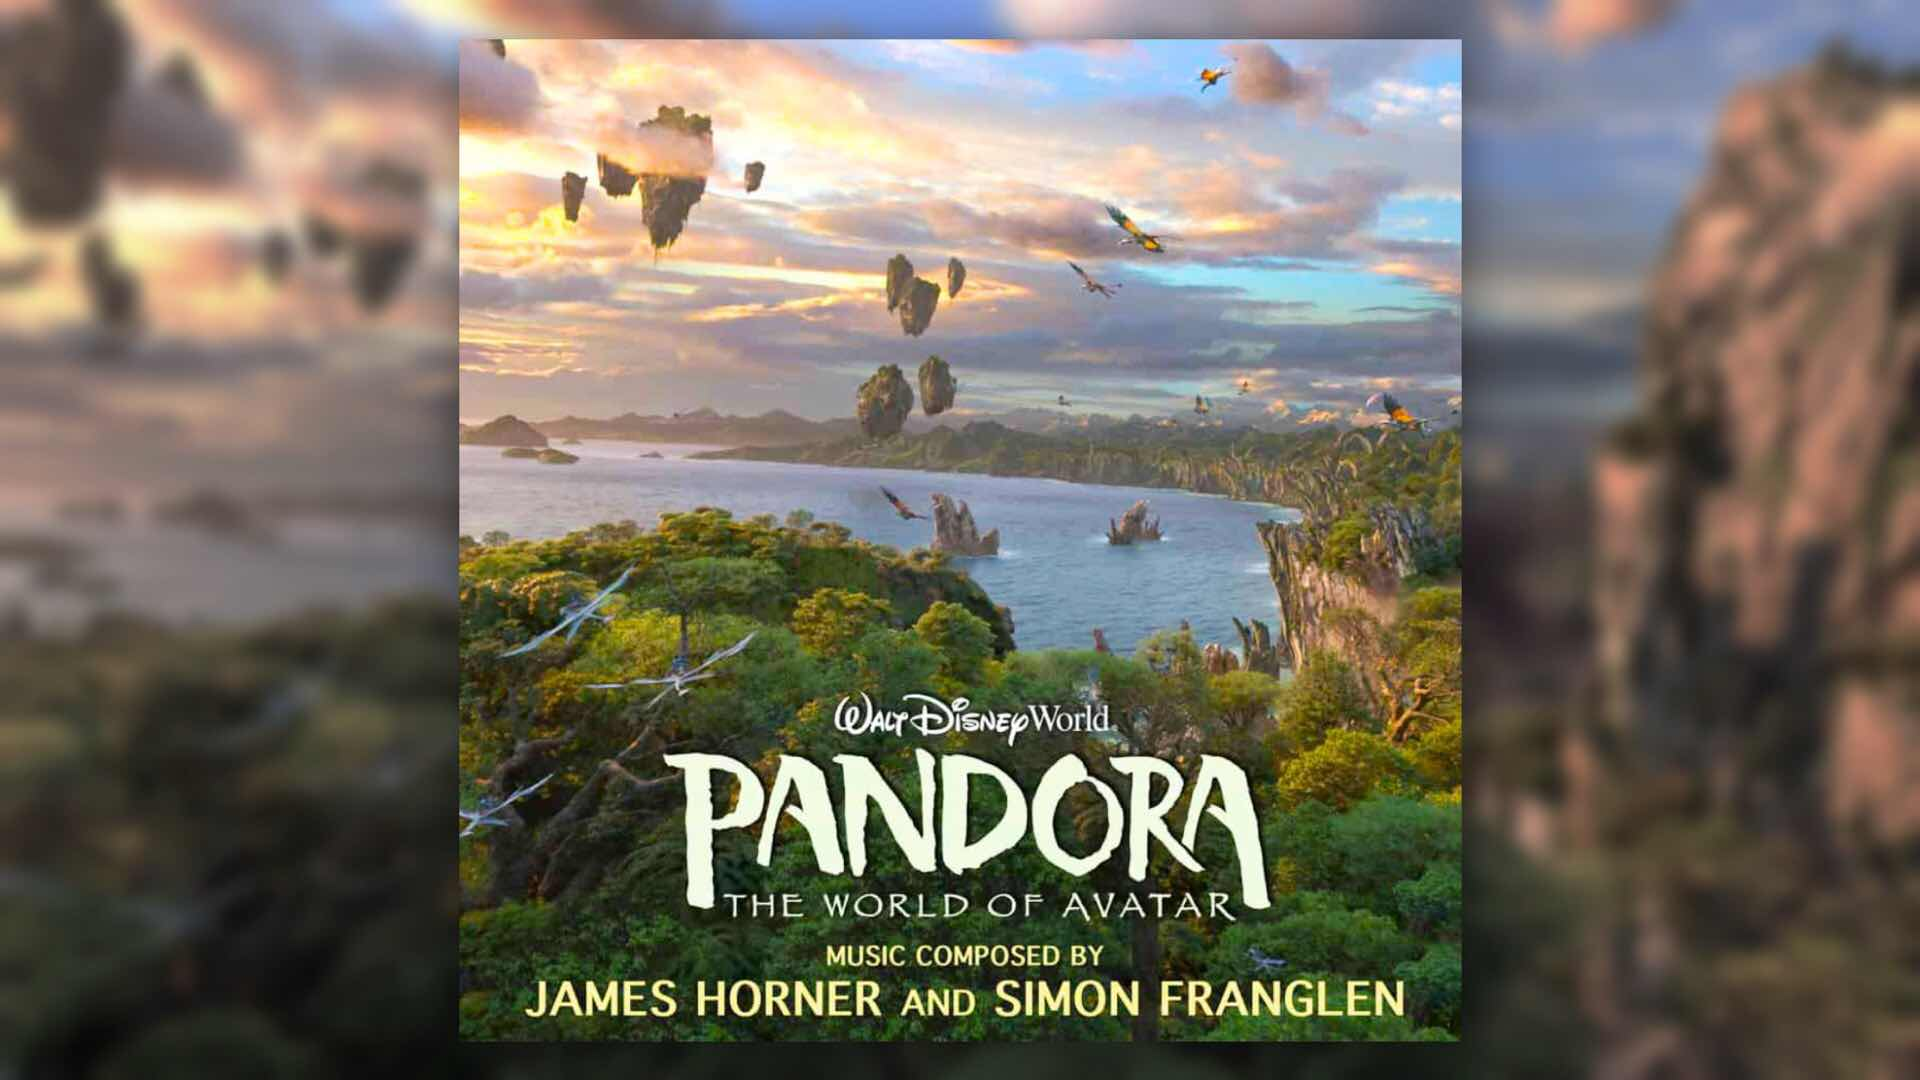 pandora-the-world-of-avatar-official-disney-world-soundtrack